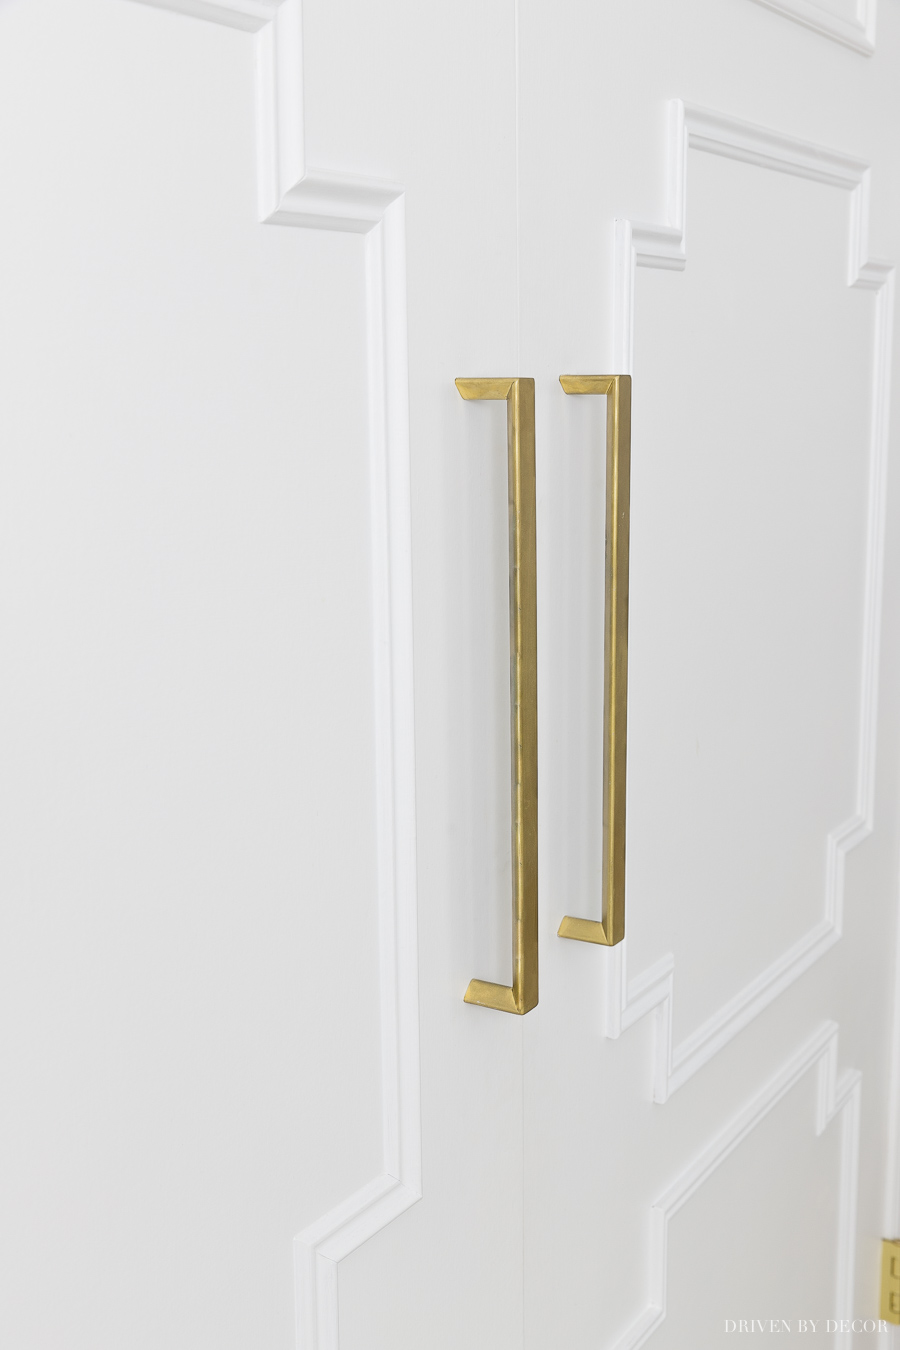 Long gold pulls dress up these closet doors - love this flat door makeover!